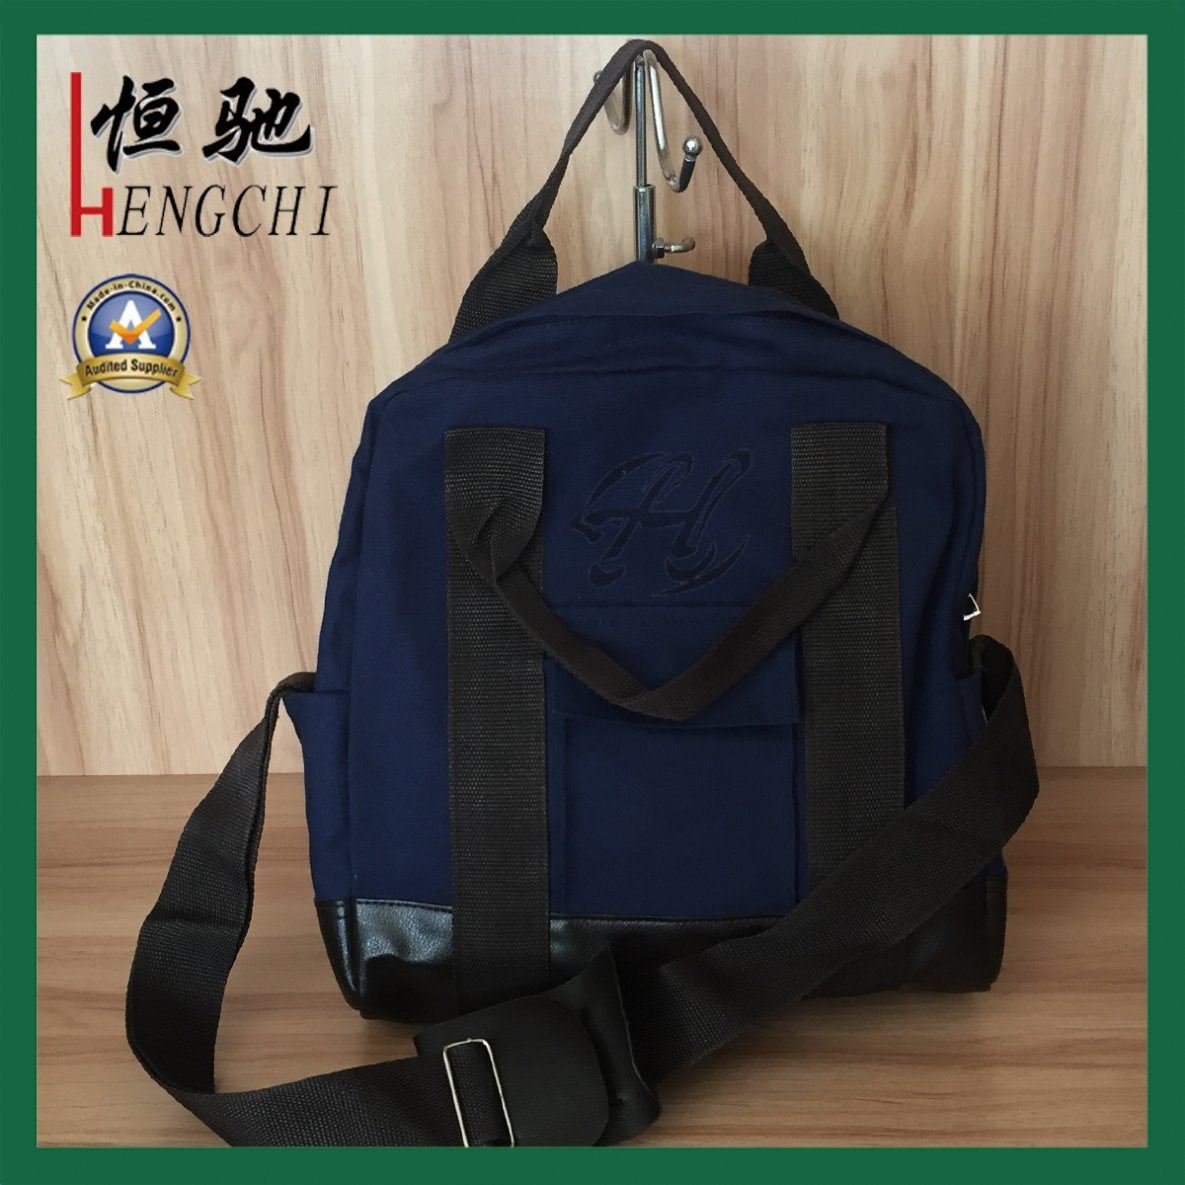 Custom 420d Oxford Bag Backpack for Outdoor, Sports, Travel, Hiking